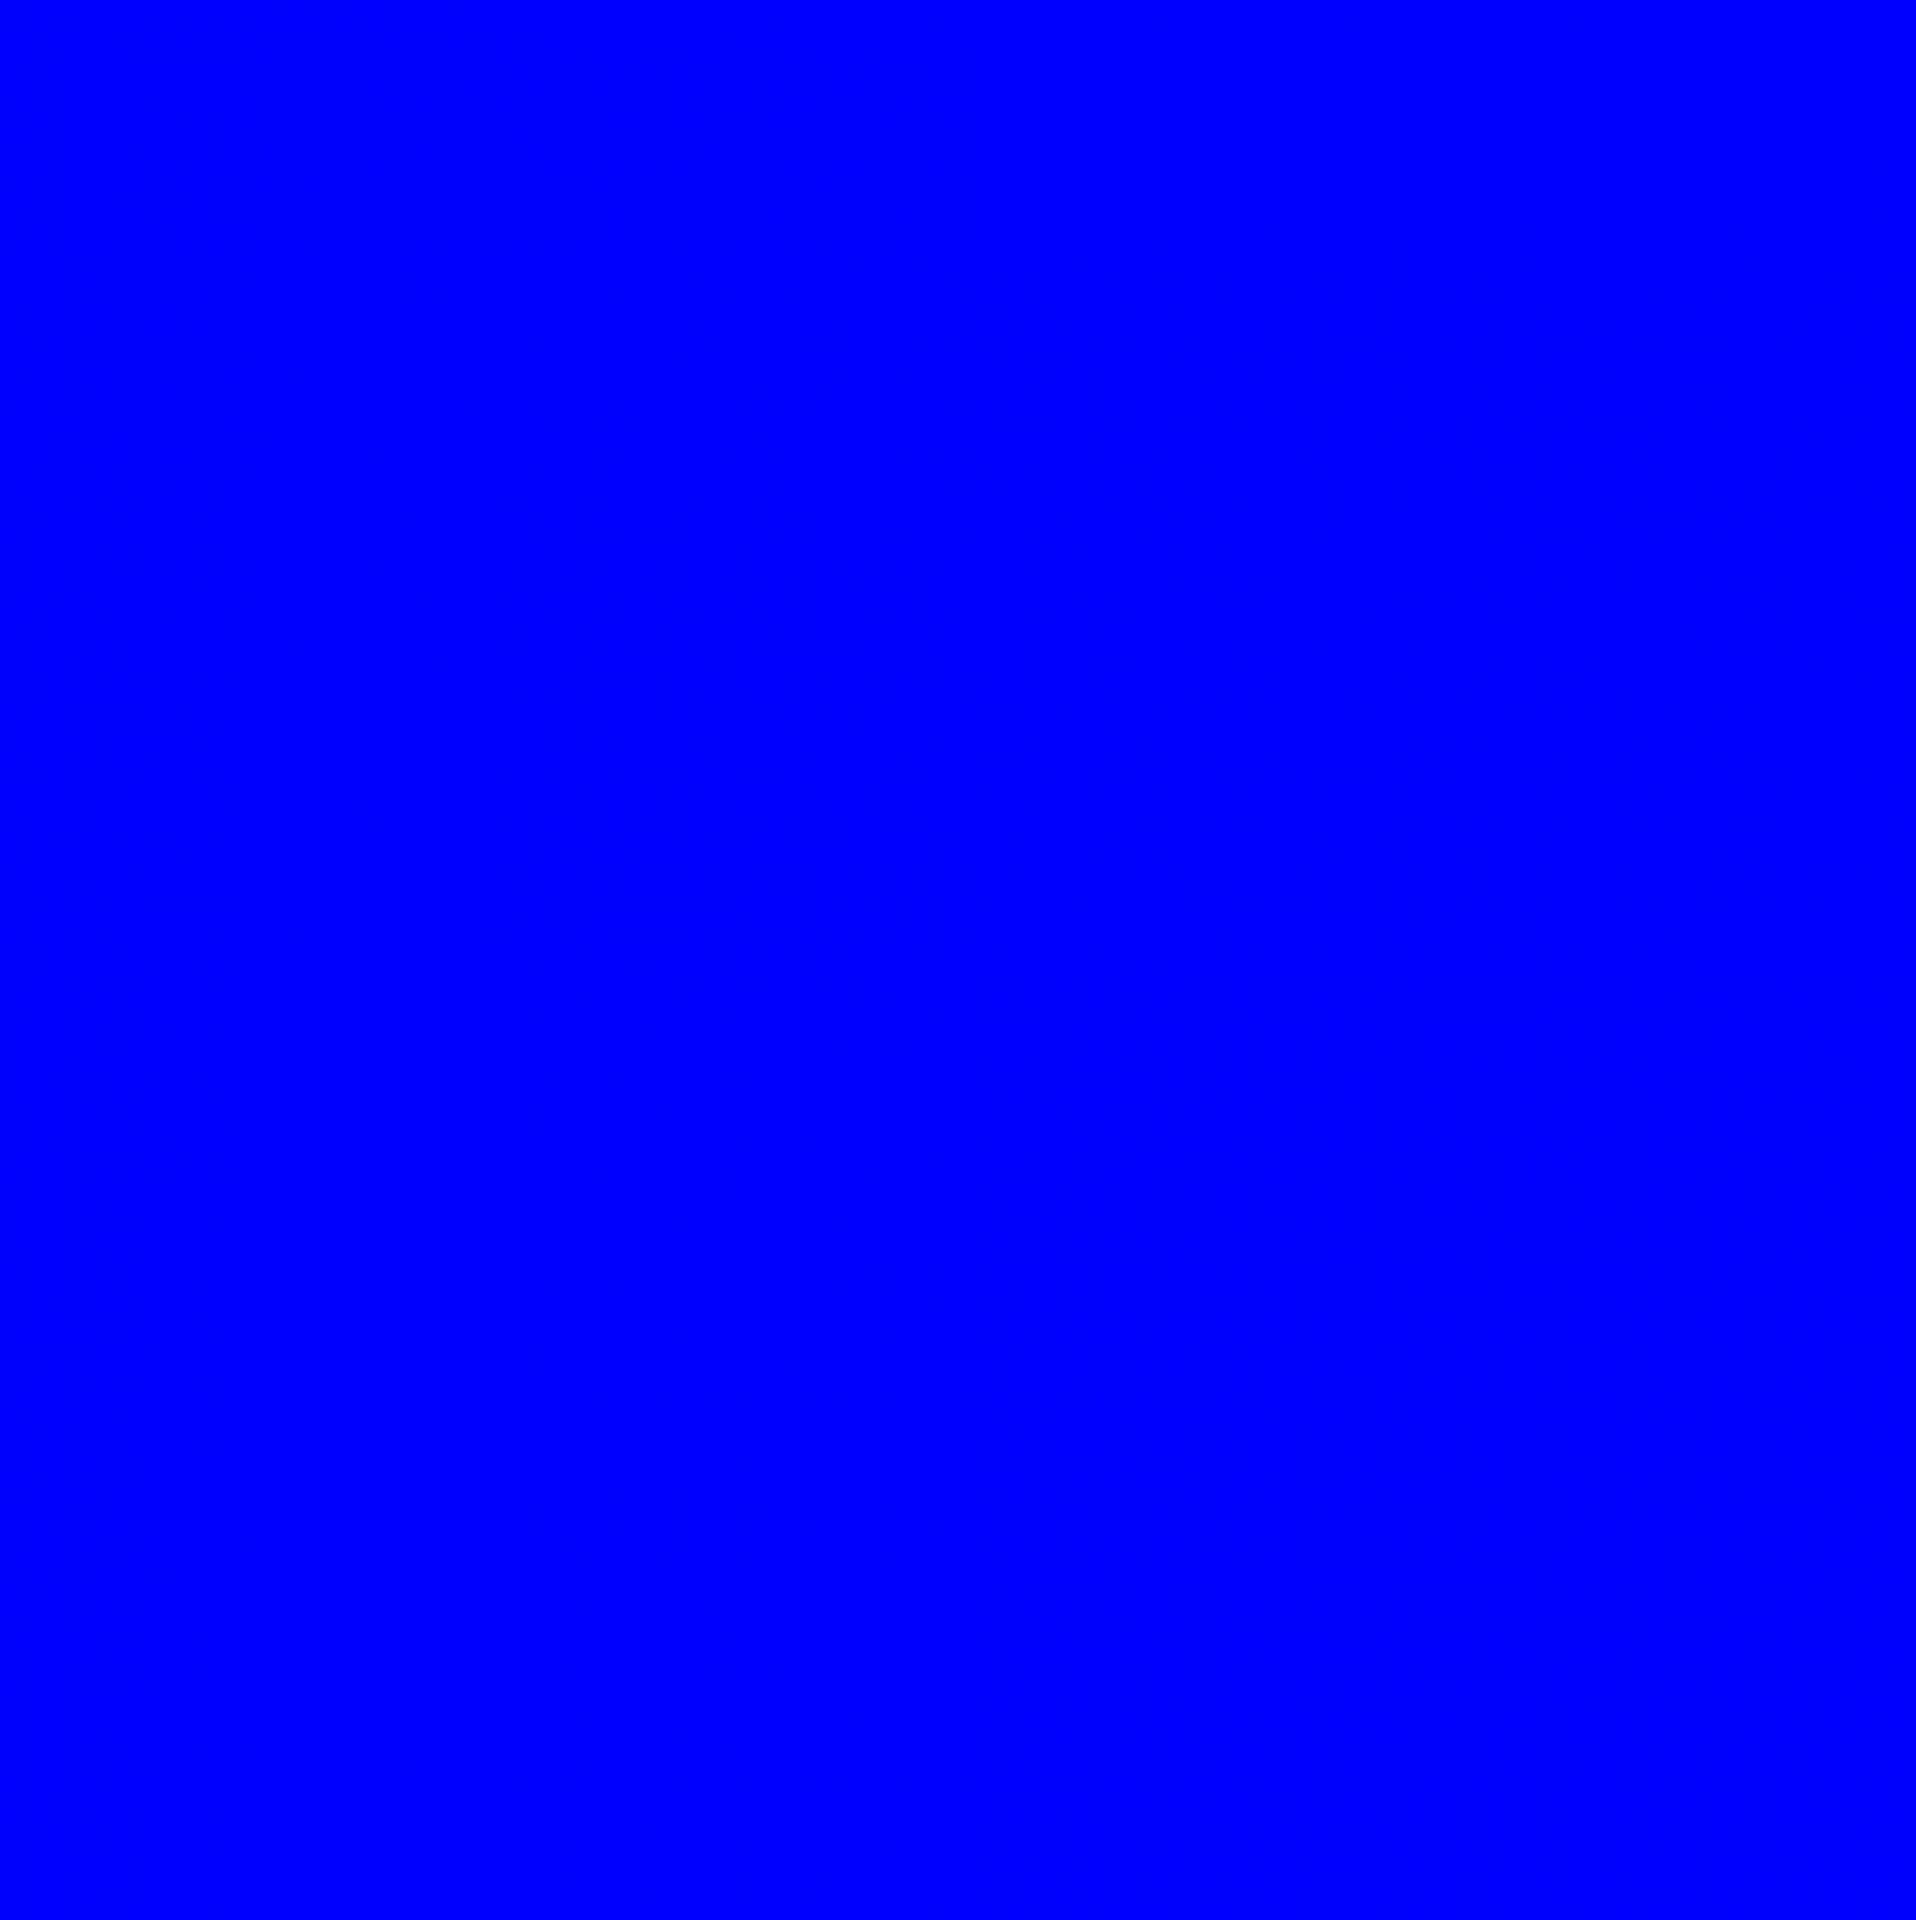 Bright Blue Background Stock Photo HD   Public Domain Pictures 1916x1920